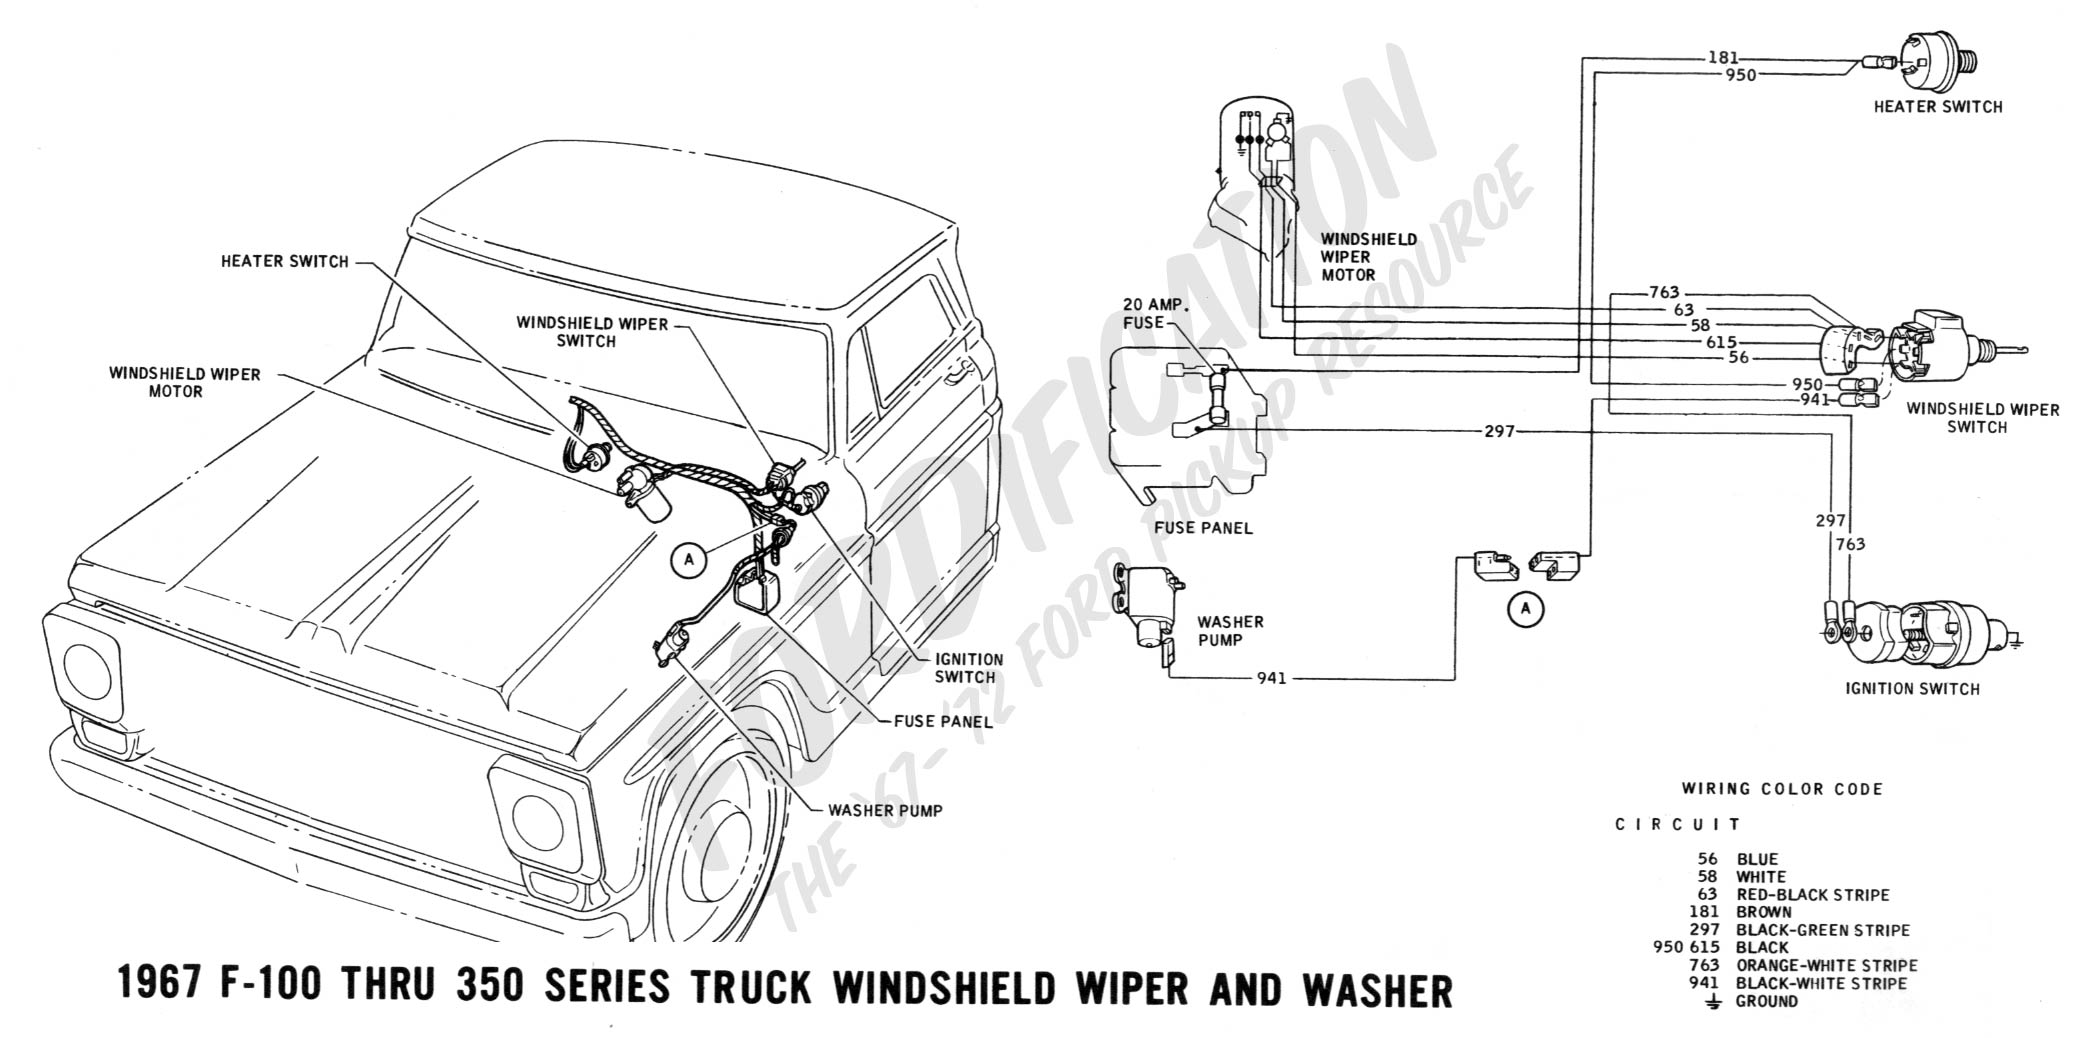 Ford truck technical drawings and schematics section h wiring 1967 f 100 thru f 350 windshield wiper and washer asfbconference2016 Gallery